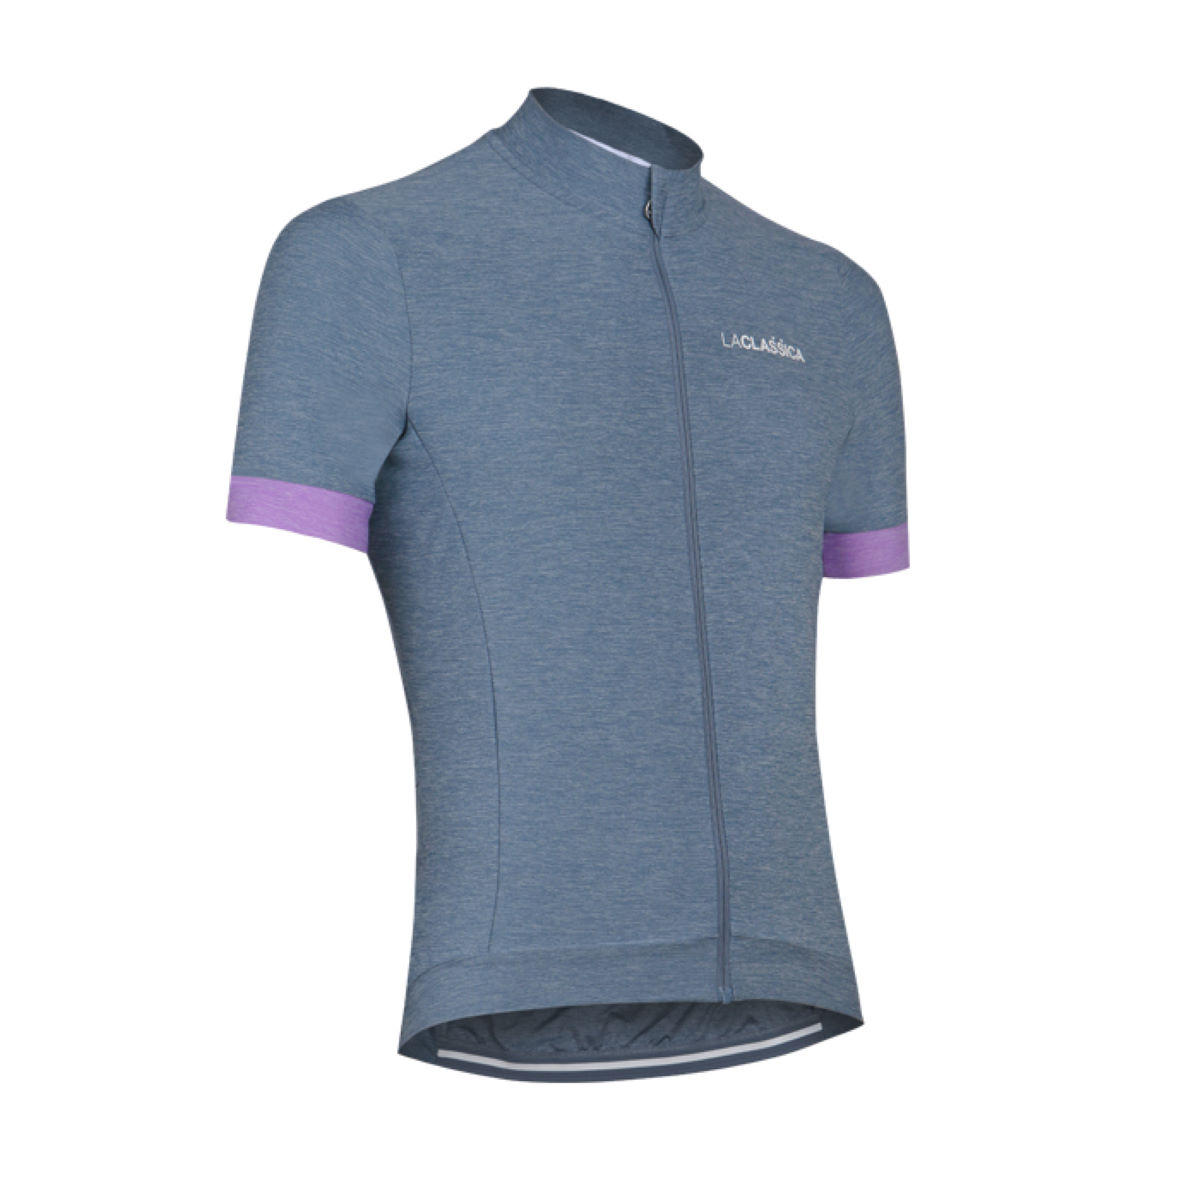 Maillot LaClassica Extra Light - S Deep Night Maillots vélo à manches courtes